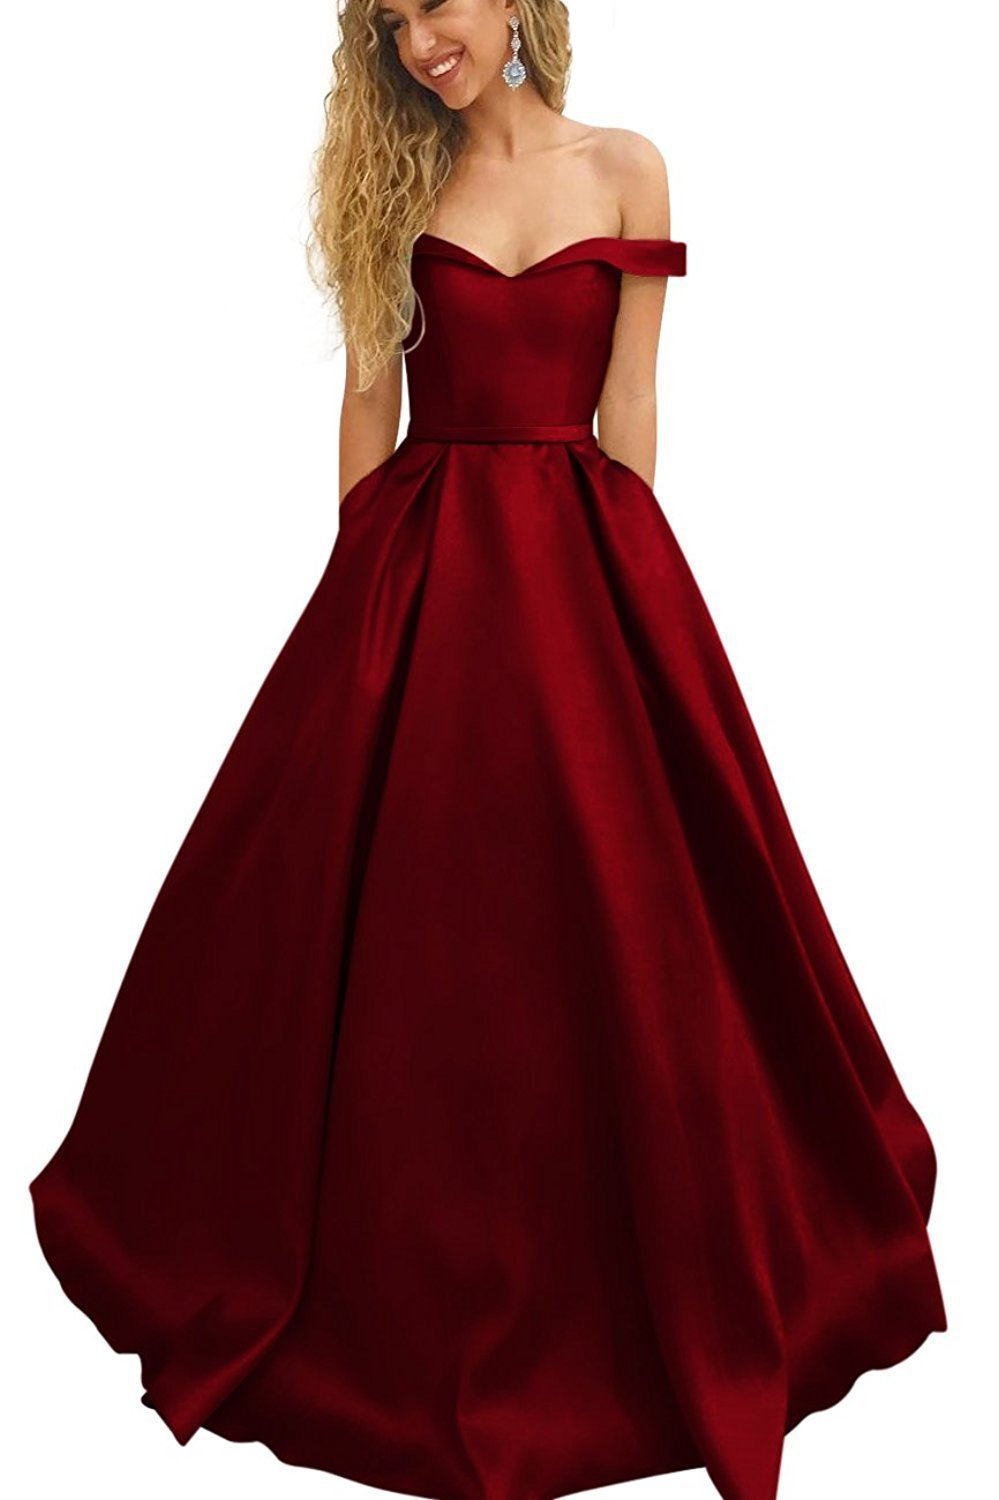 884c677277c G045burgundy. G045burgundy. Previous. Women s Prom Dress 2018 Long Off  Shoulder Satin Evening Party Dress With Pockets